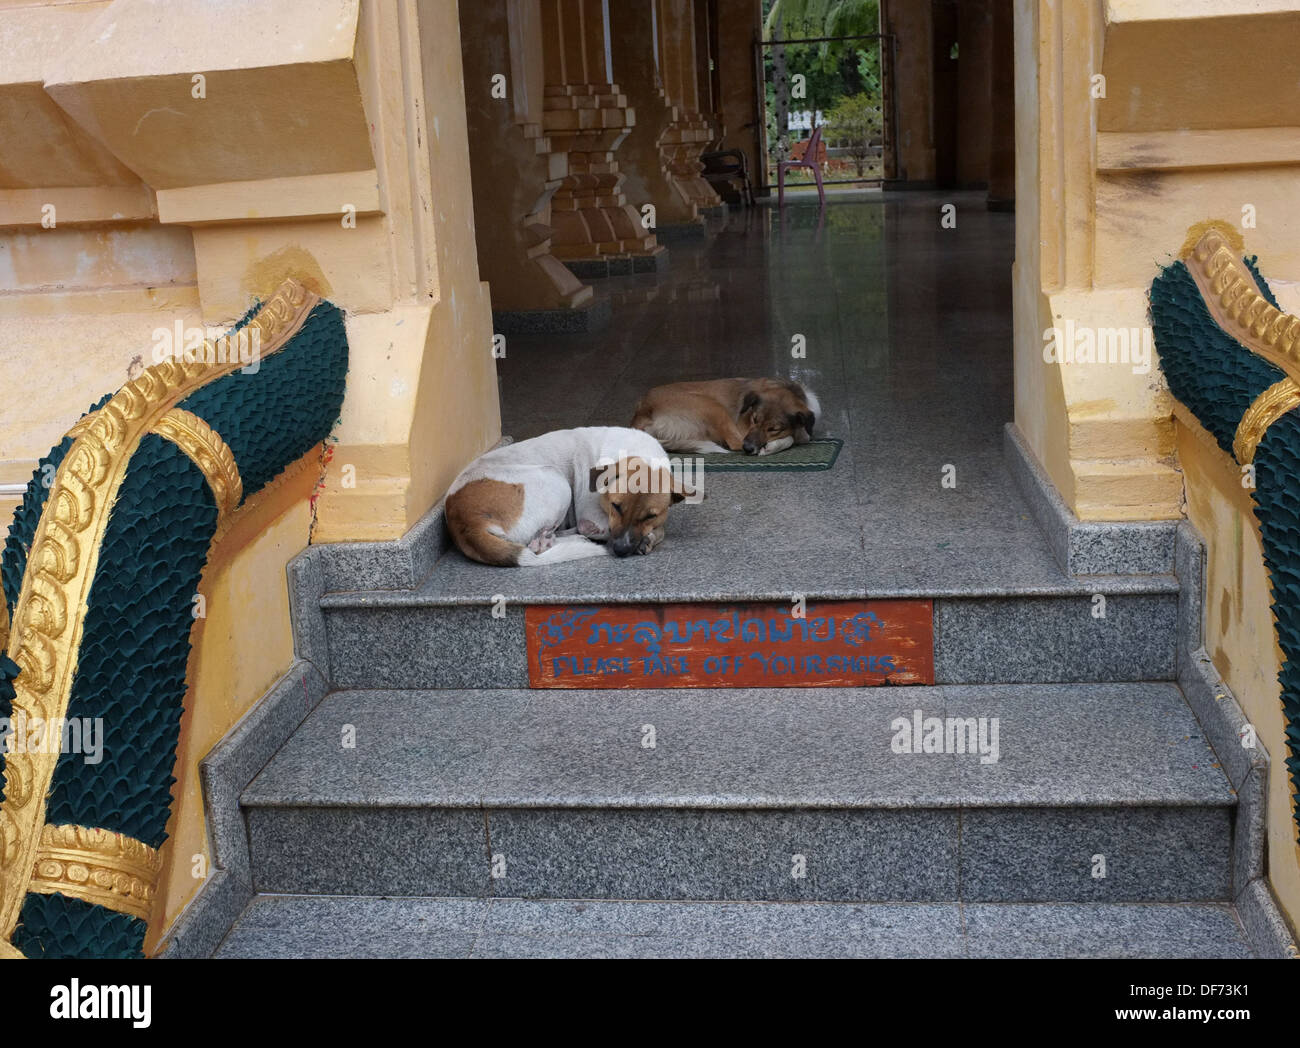 Two dogs sleeping on the steps of a Buddhist temple in Vientiane, Laos - Stock Image